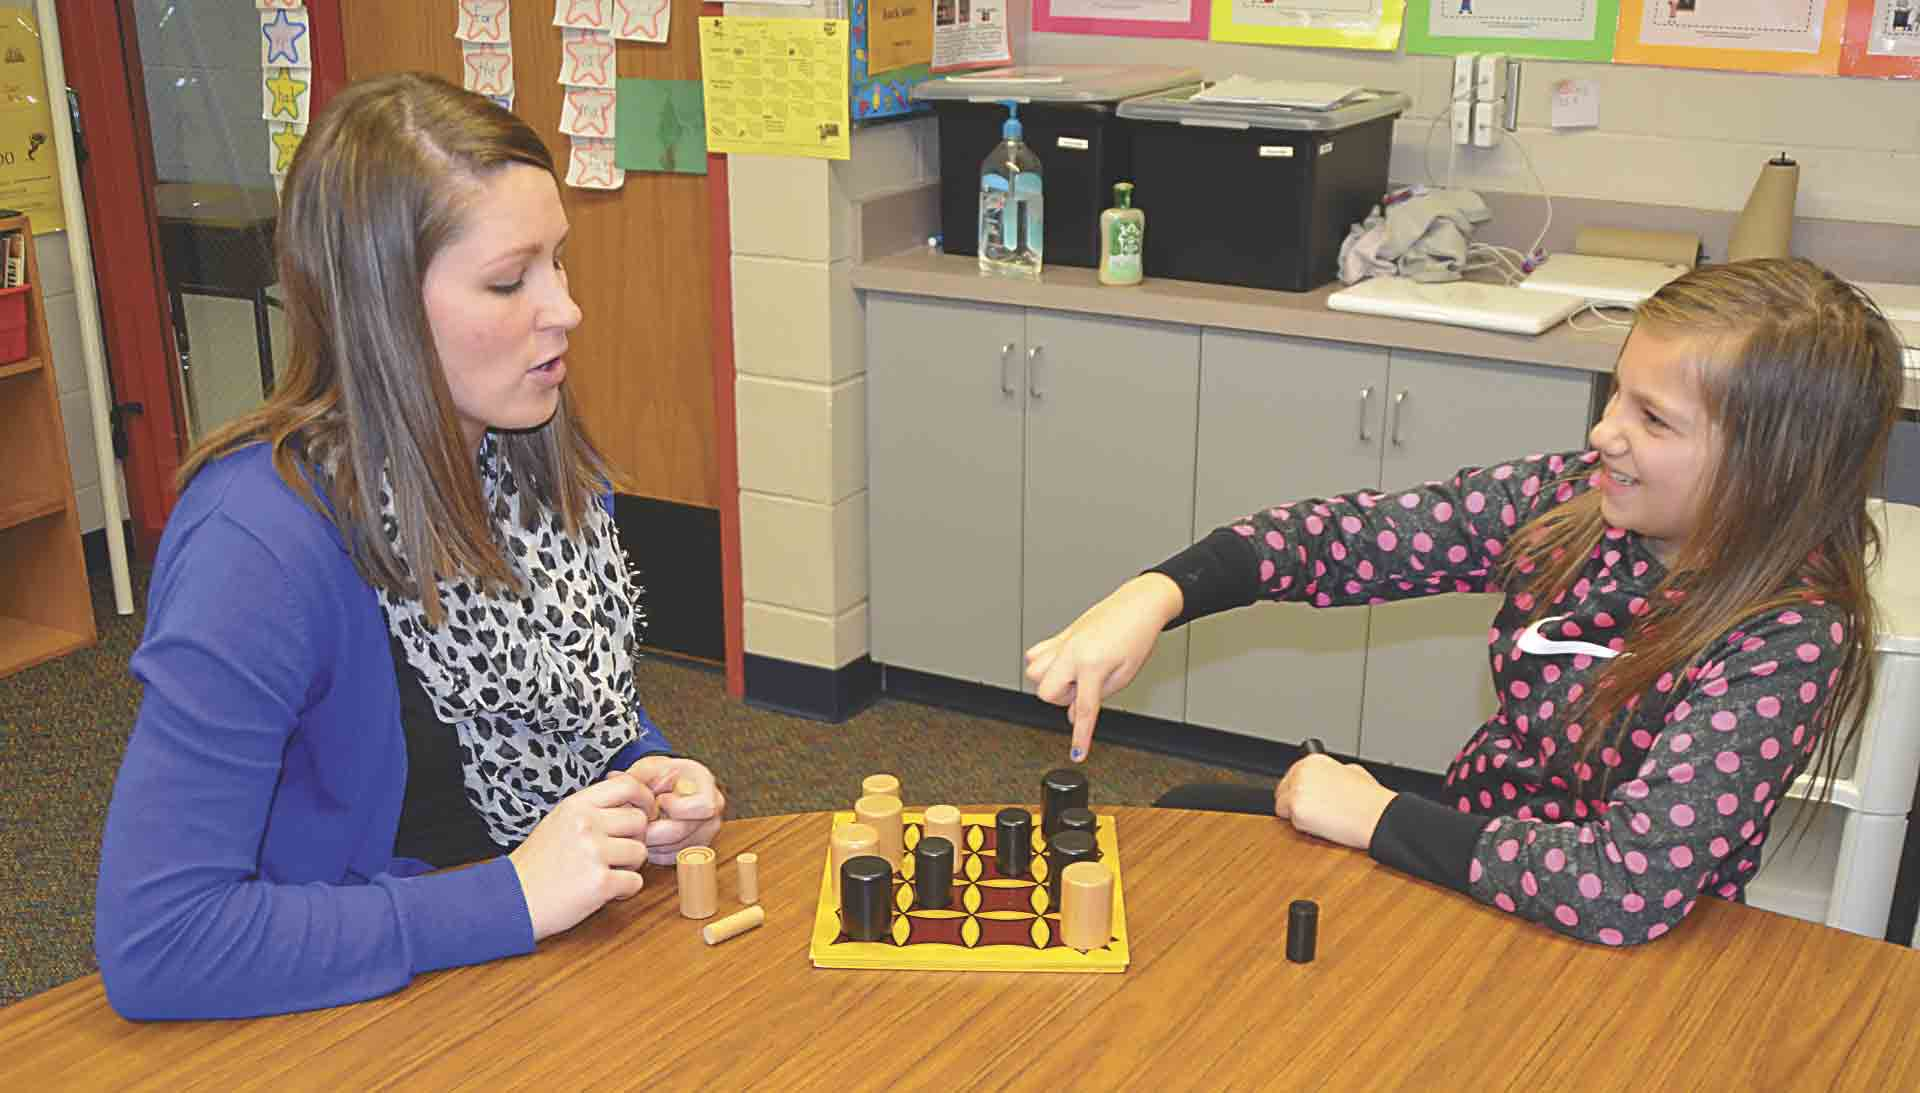 North Fayette Valley Community Coalition mentor Mollie Franzen (left) enjoys spending quality time with her mentee, Valley Elementary third-grader Haley Voshell. Here, Haley explains her strategy to Franzen while the two play a board game together.Mentoring 'so gratifying...